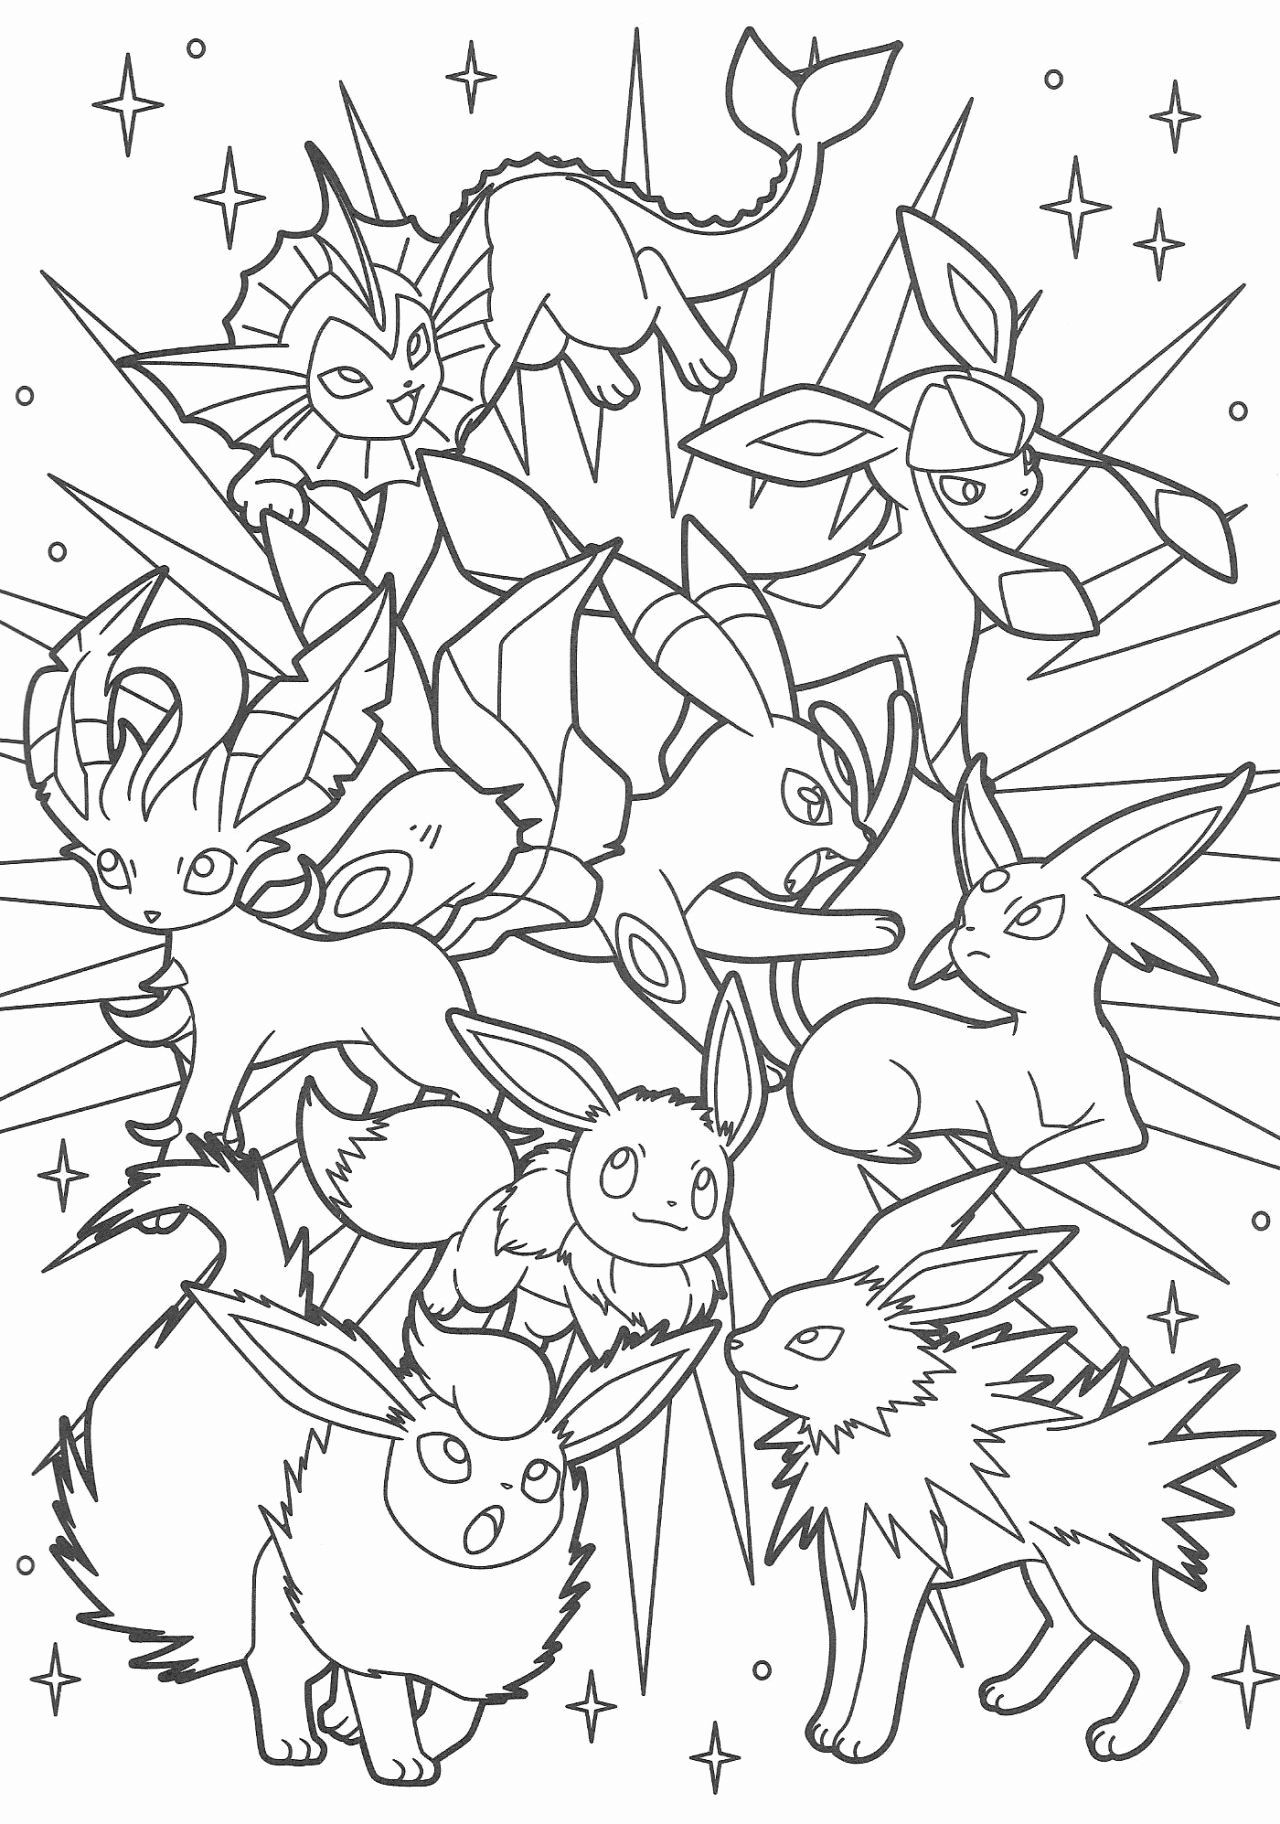 Eevee Evolutions Coloring Page Lovely Pokemon Scans From Pacificpikachu S Collection Pikachu Pokemon Coloring Sheets Pokemon Coloring Pages Pokemon Coloring